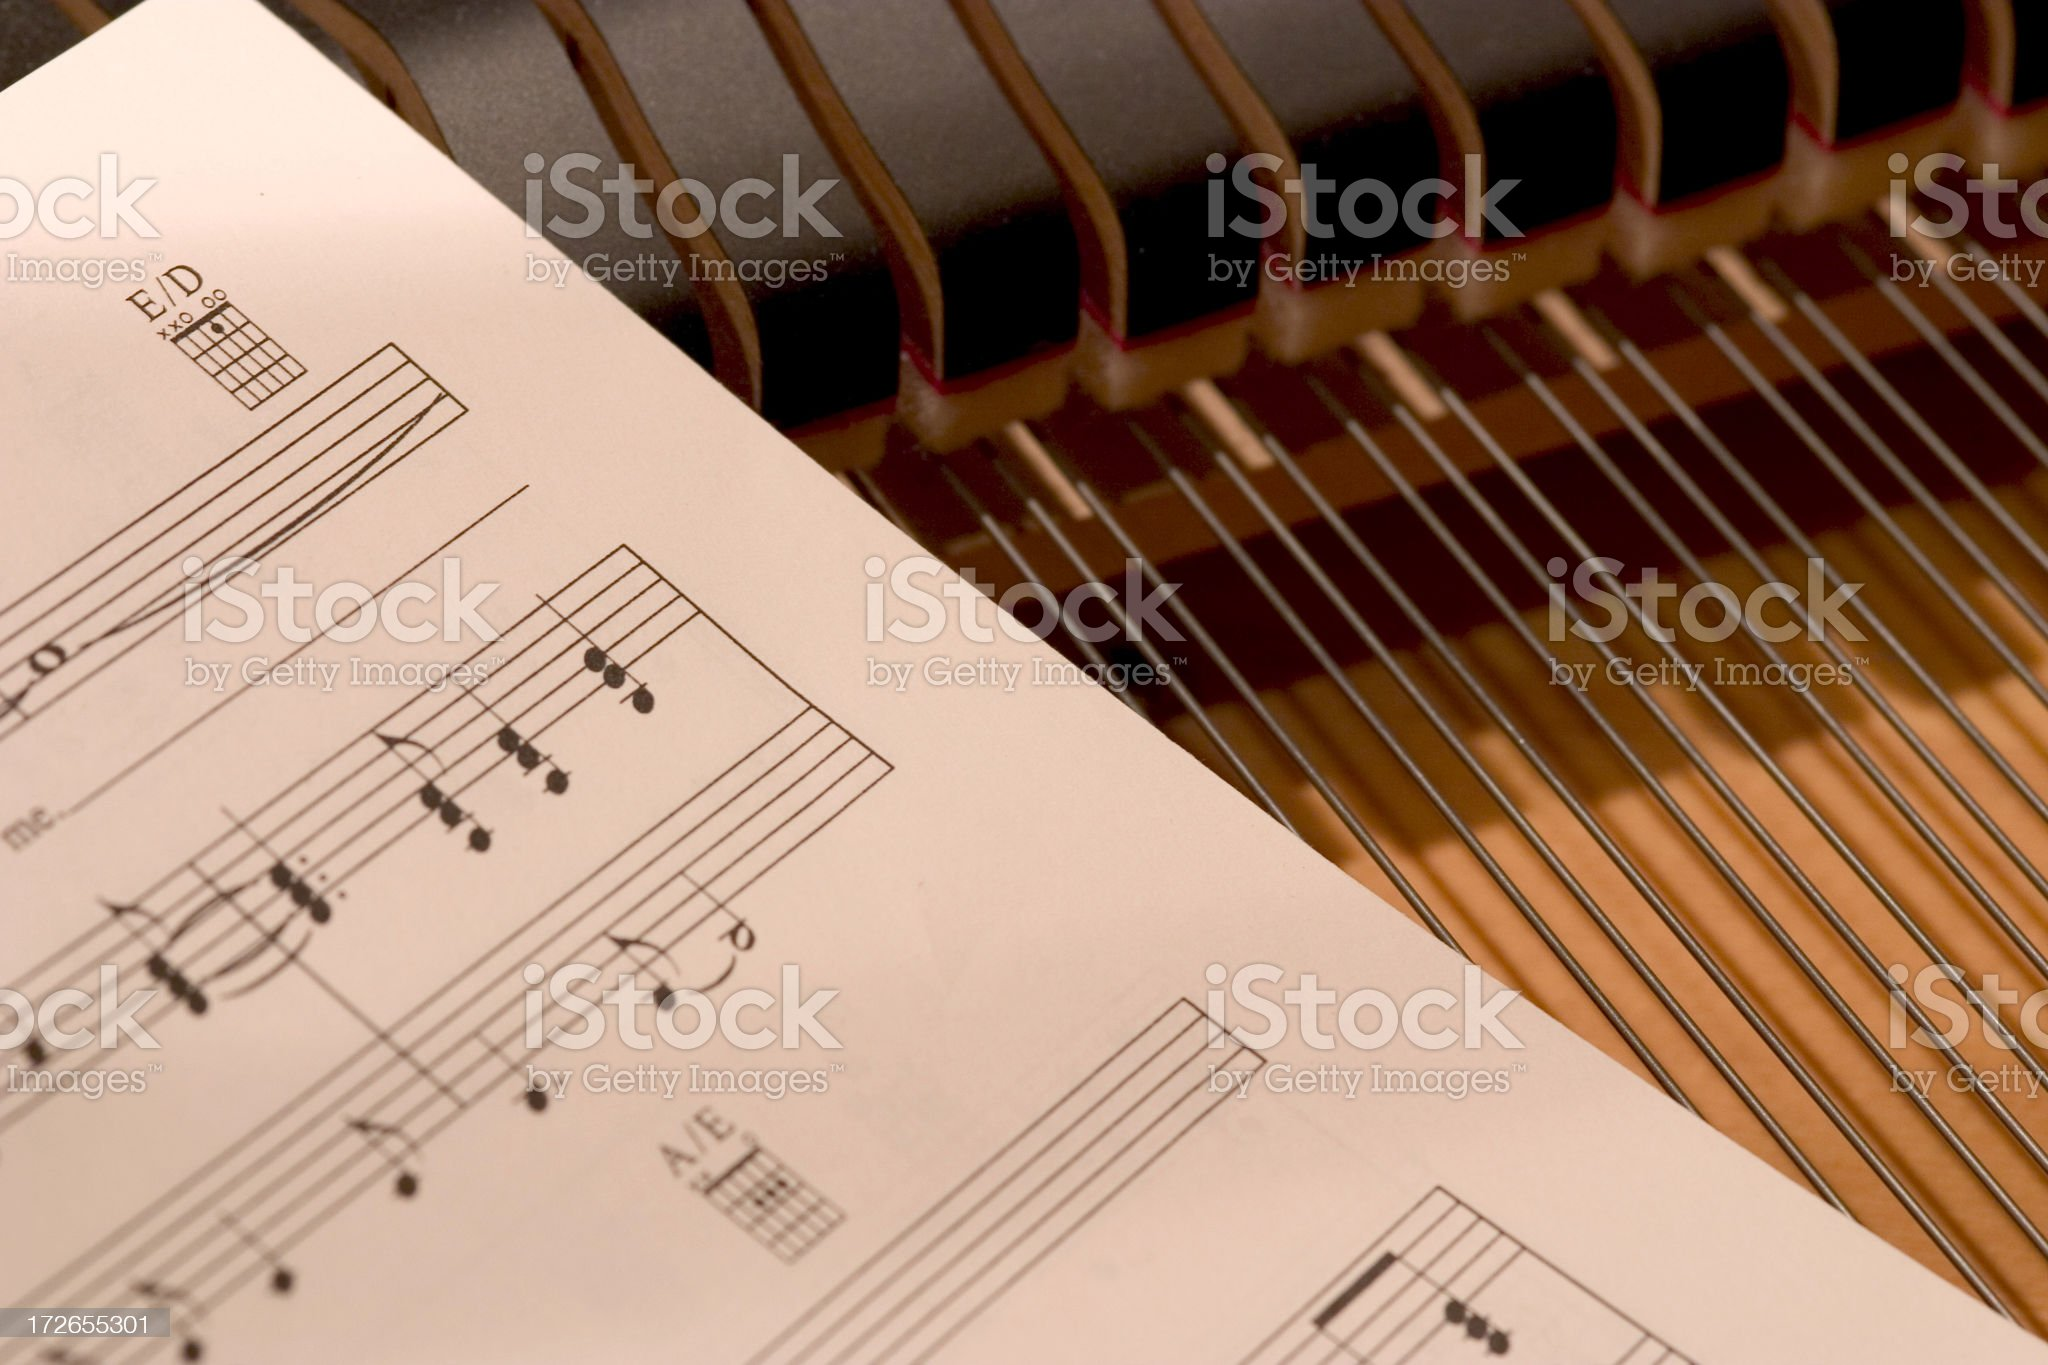 Sheets and strings royalty-free stock photo